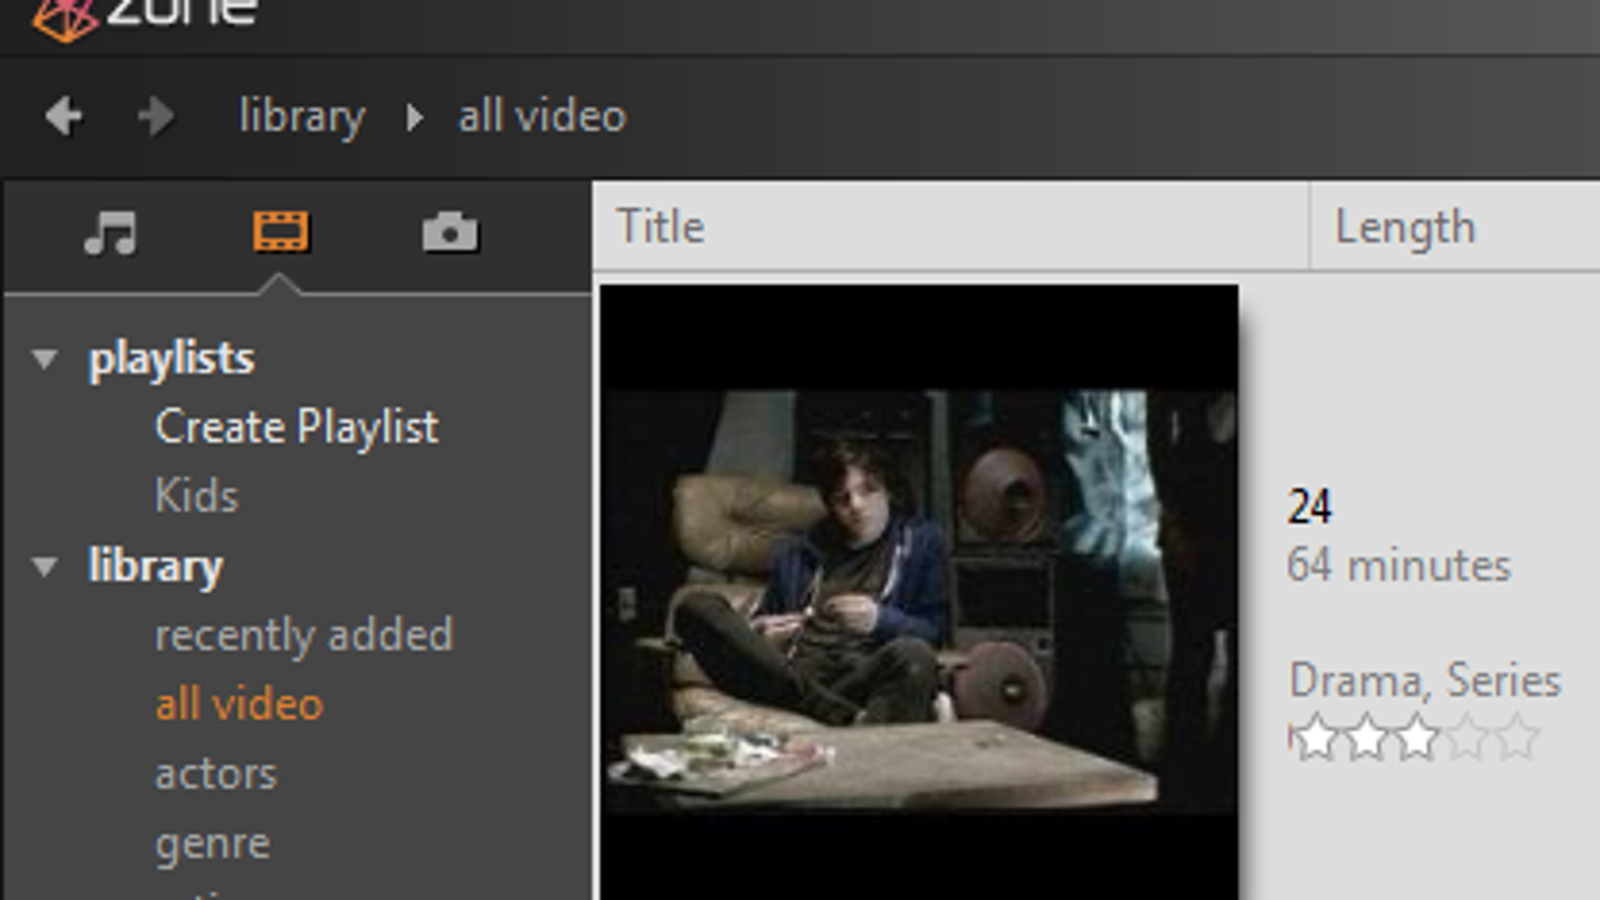 Hack the Zune software to support more audio/video formats